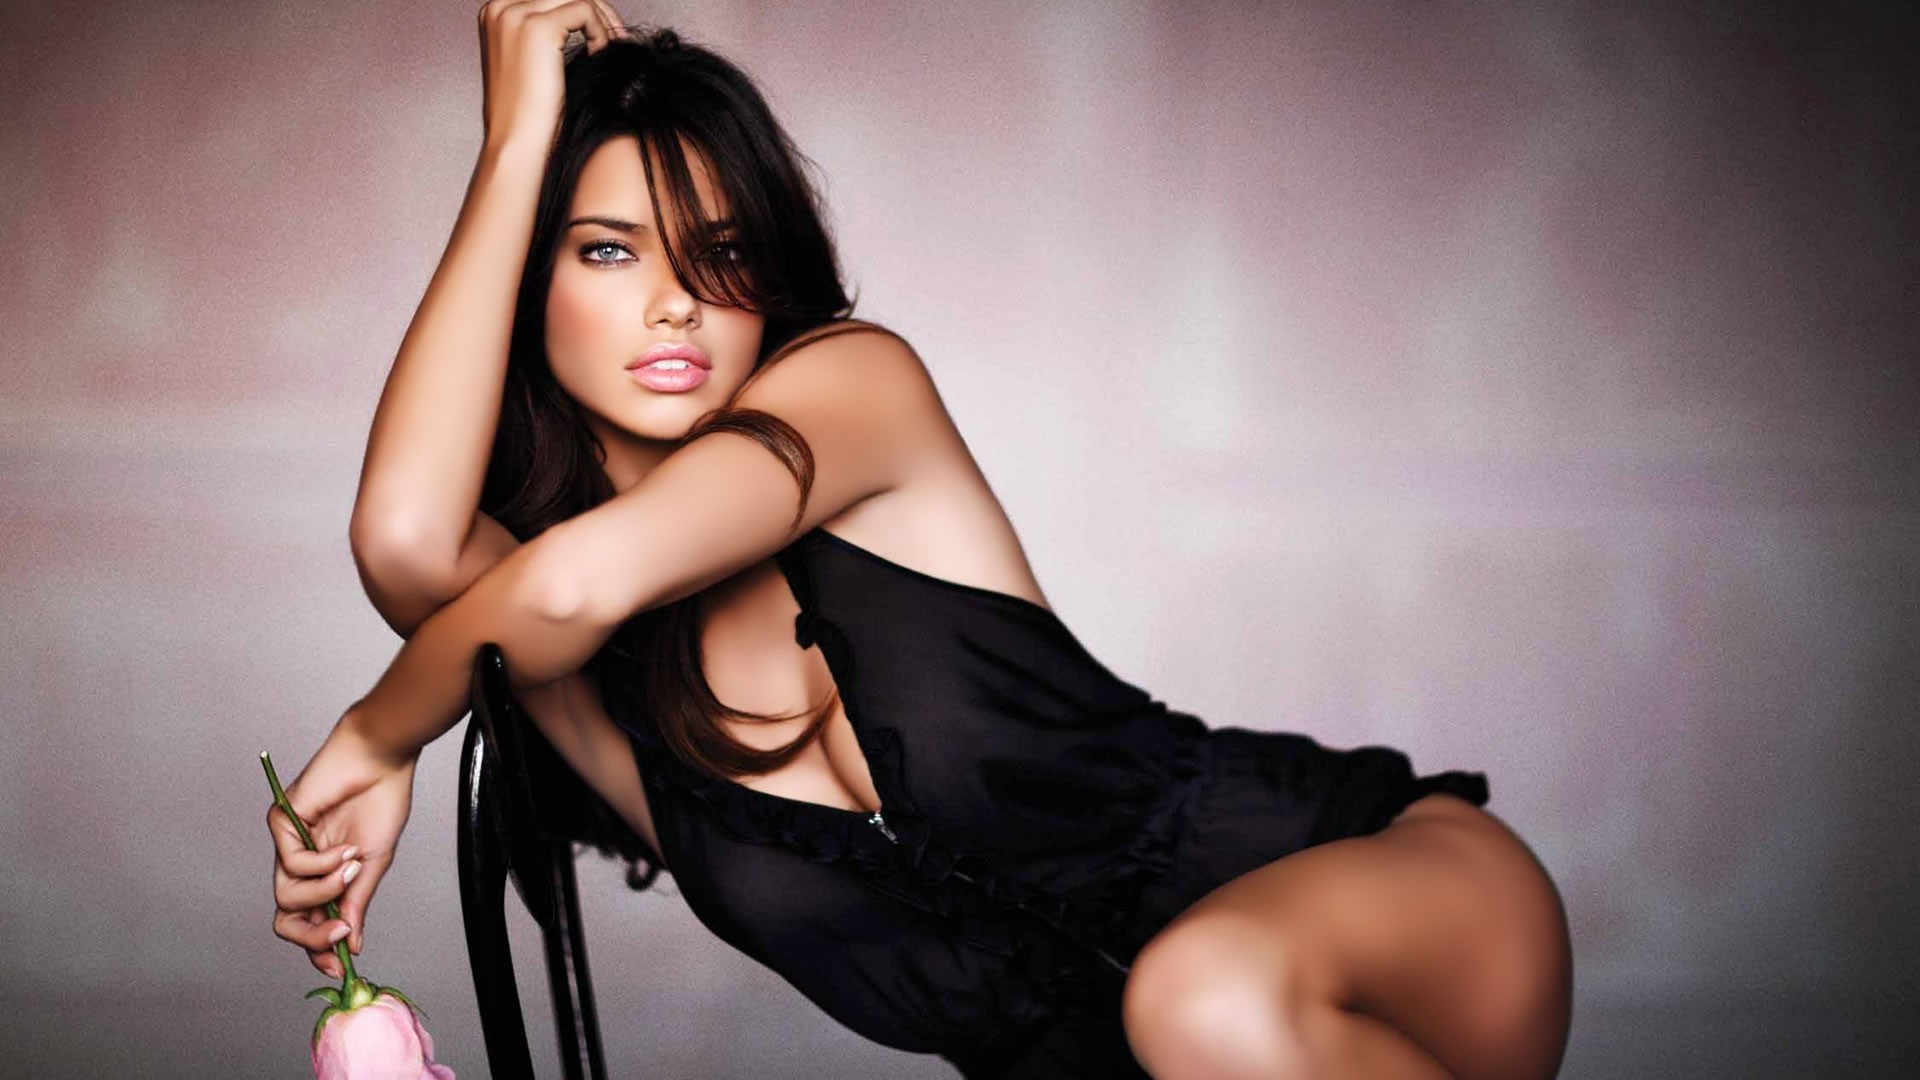 woman adriana lima HD Wallpaper